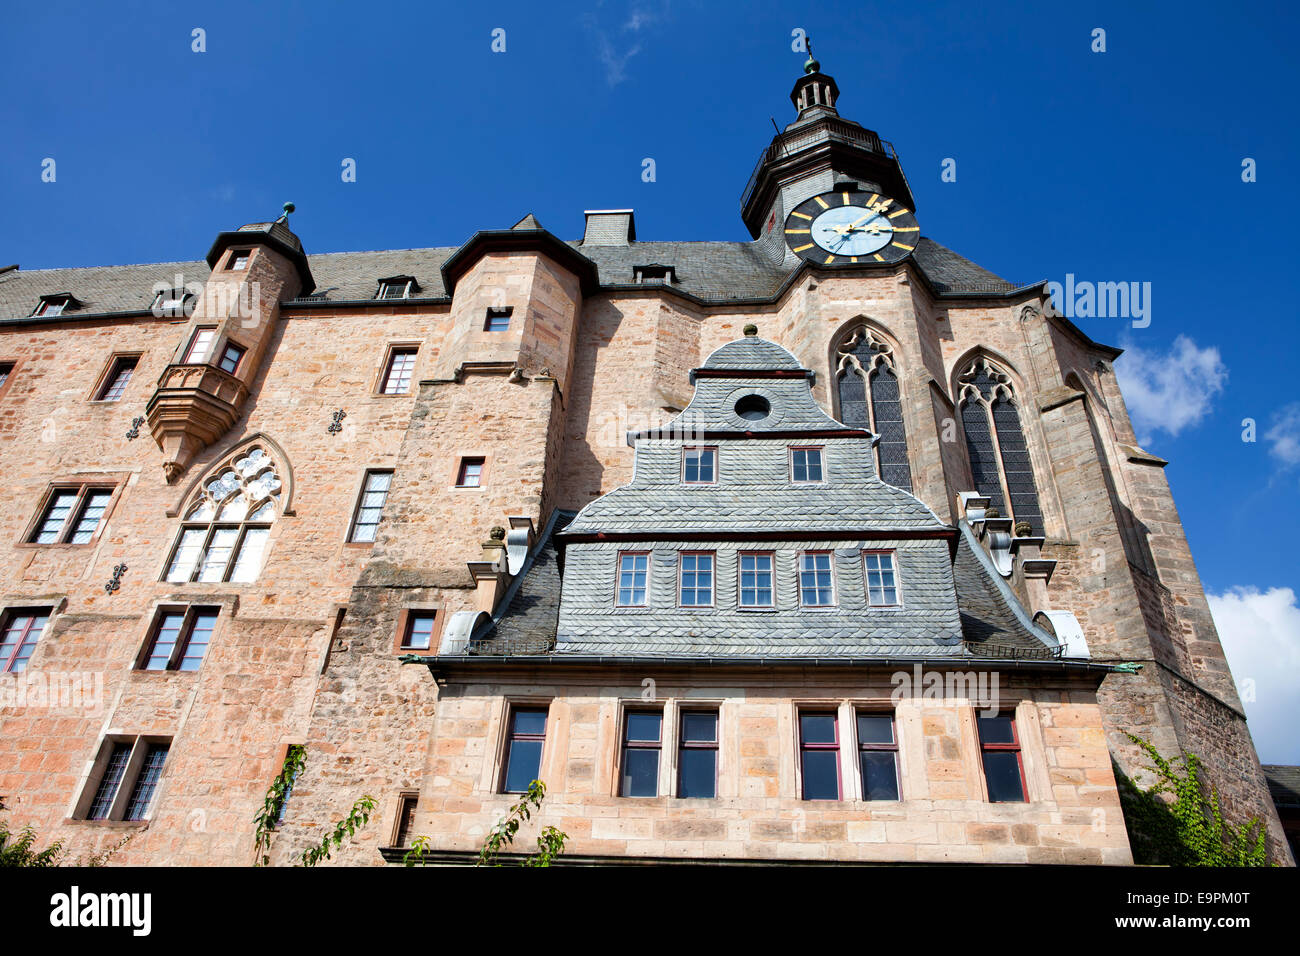 Marburg Castle, Landgrafenschloss, Marburg, Hesse, Germany, Europe, - Stock Image